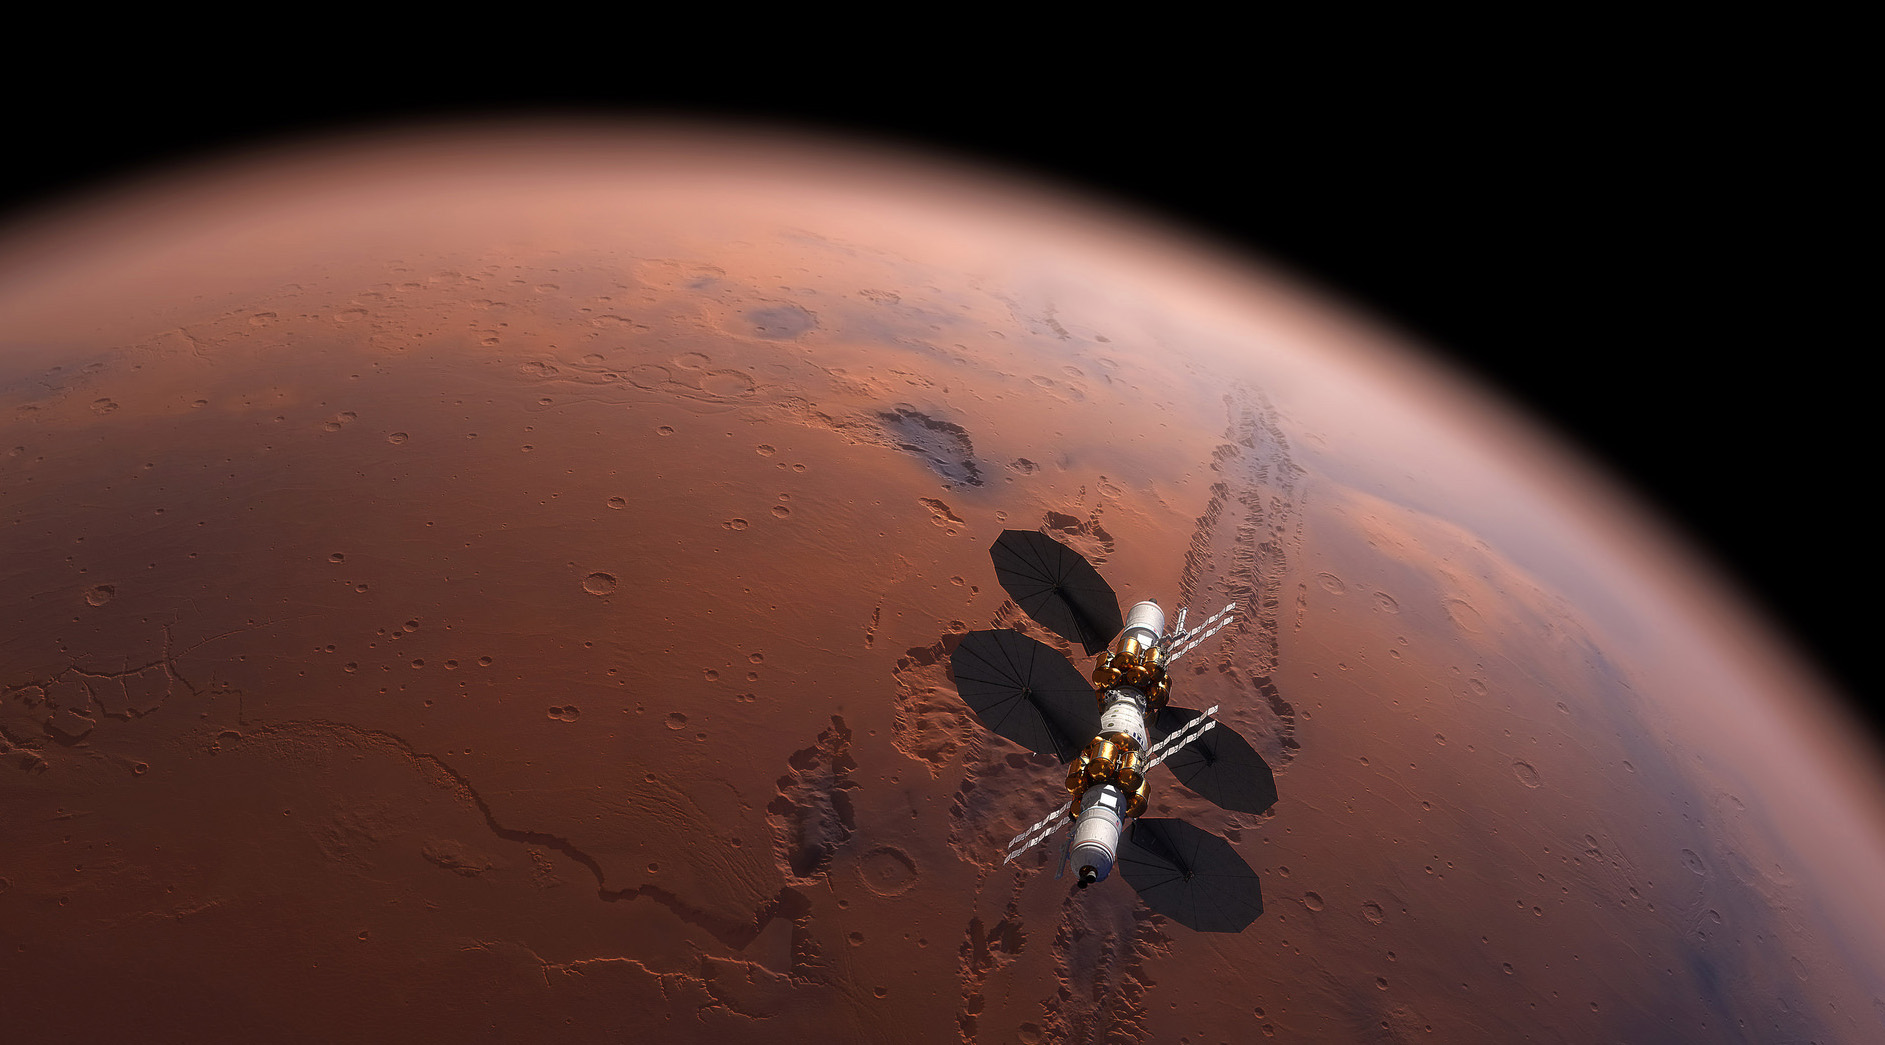 UAE stargazers will get the chance to see Mars up close tonight